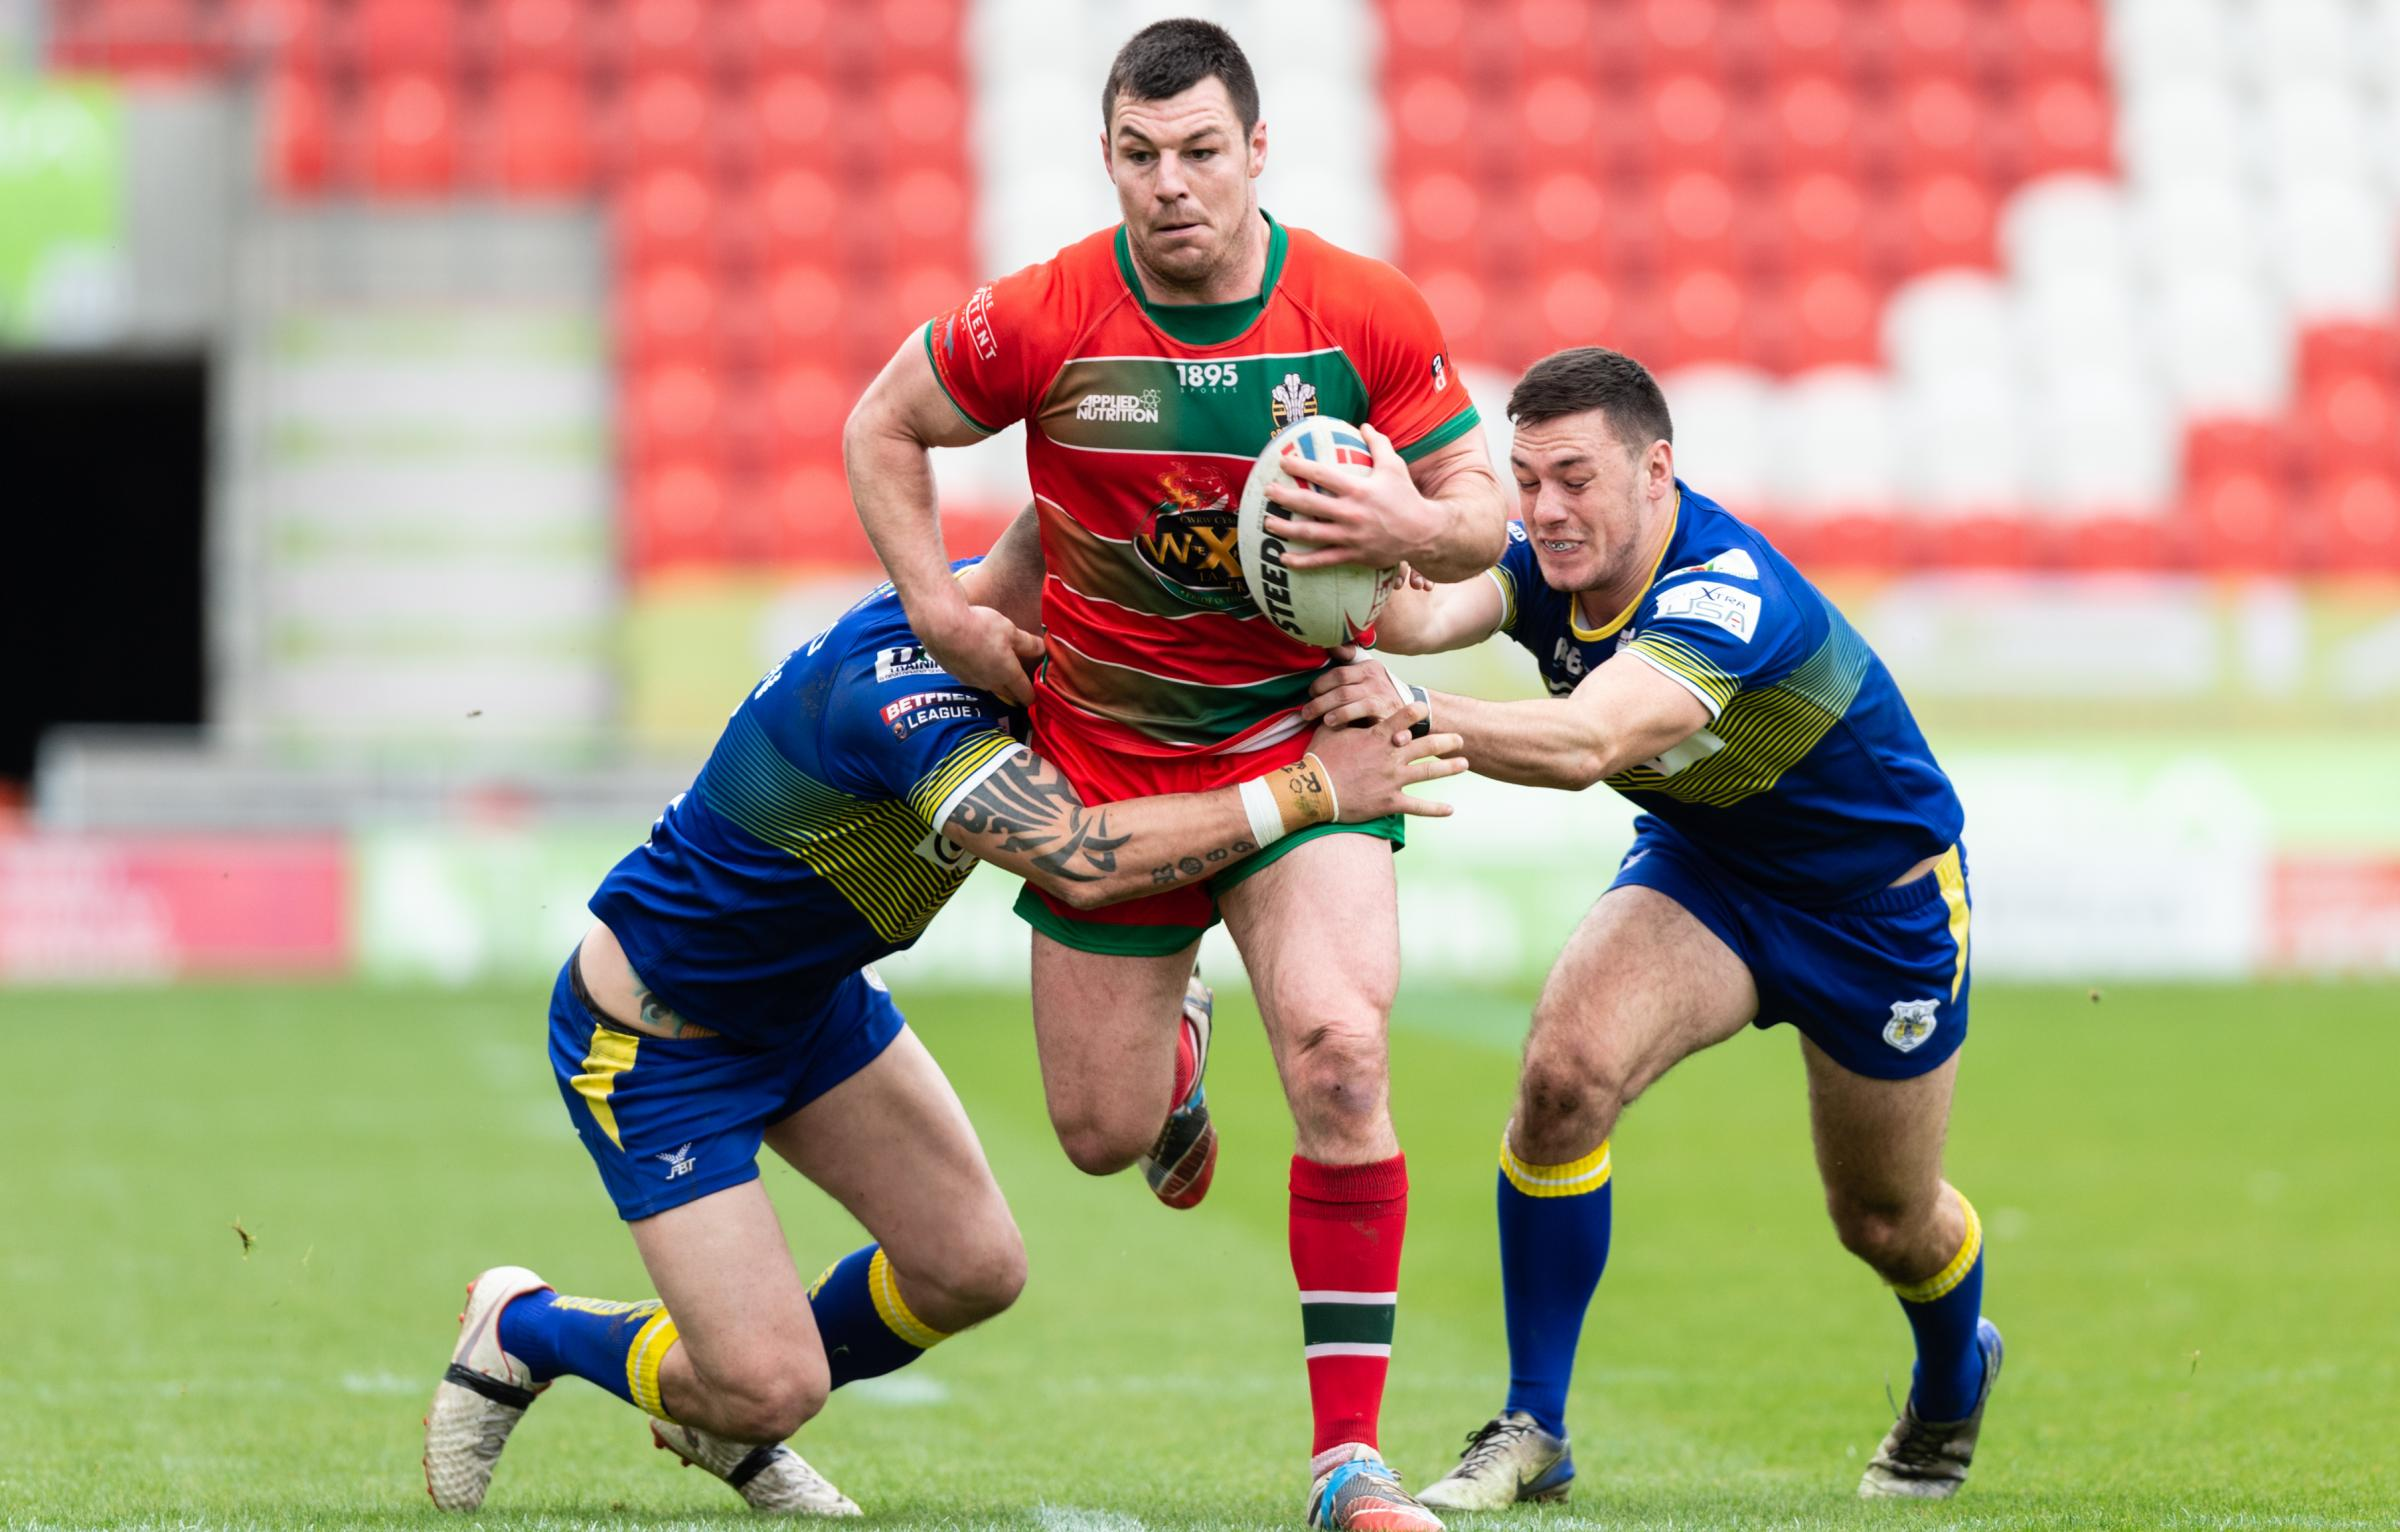 Doncaster RLFC vs North Wales Crusaders